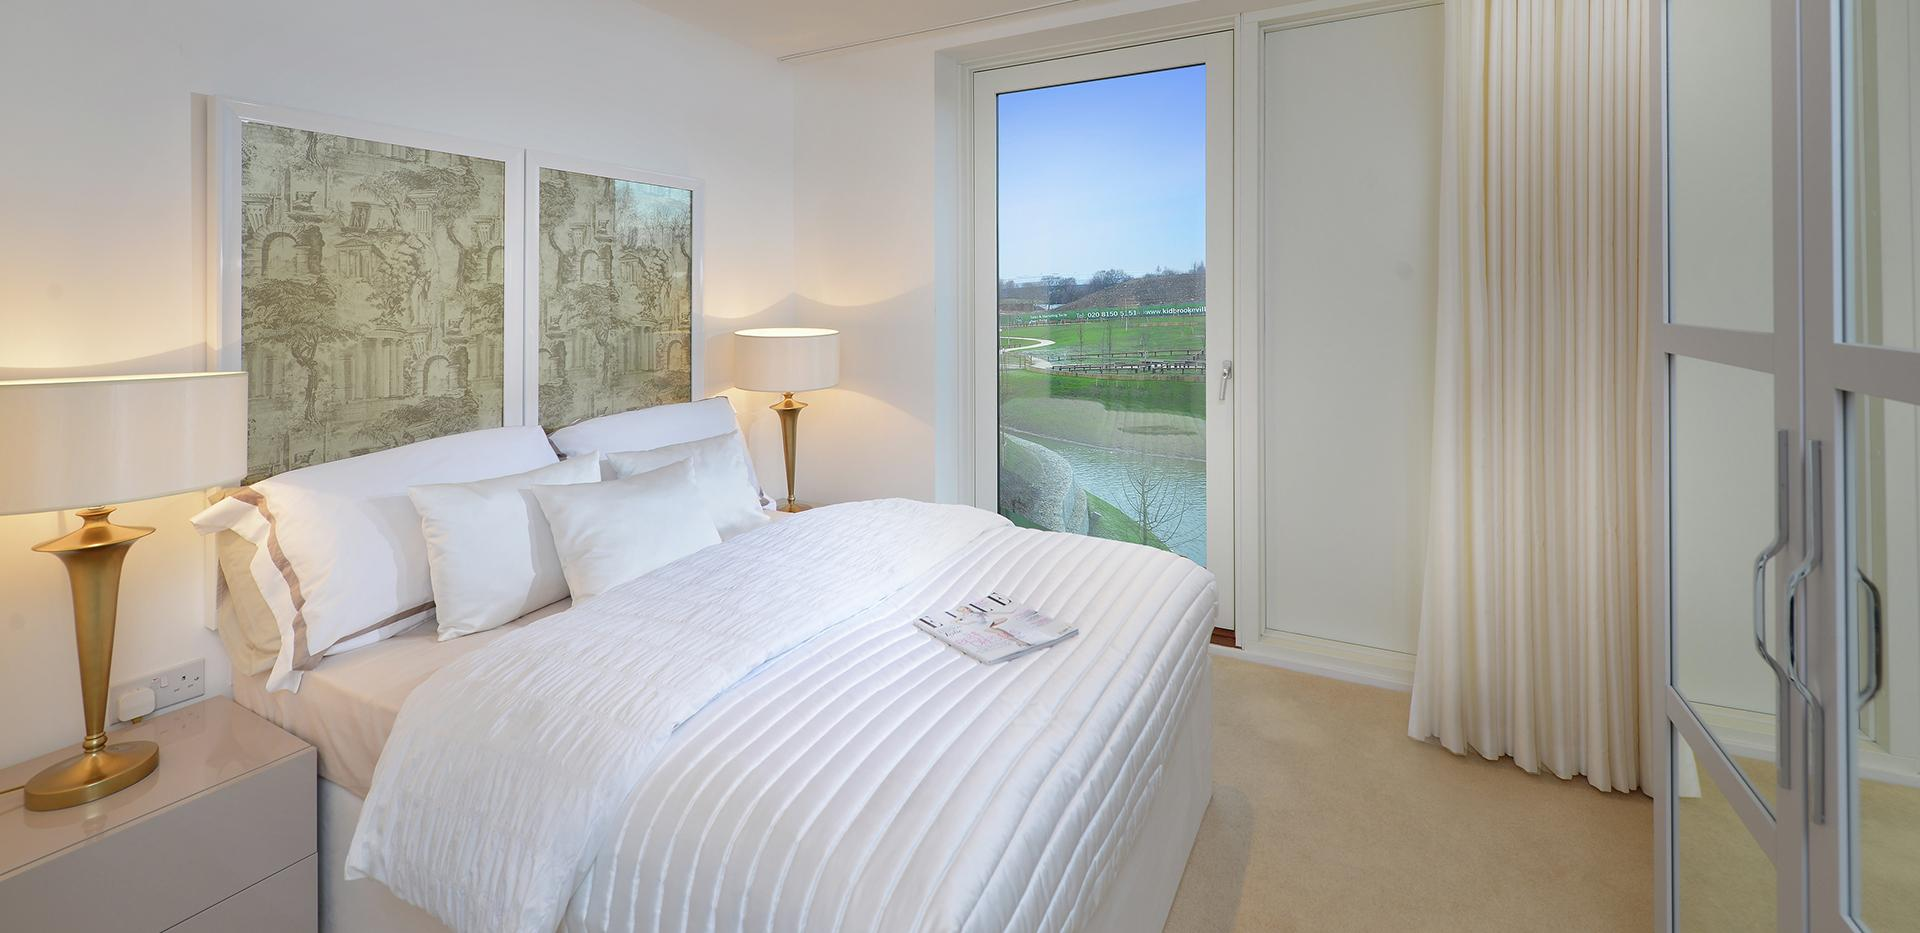 Berkeley Homes, Kidbrooke Village. Blackheath Quarter, Interior, Bedroom, Views, Open, Space, Lake